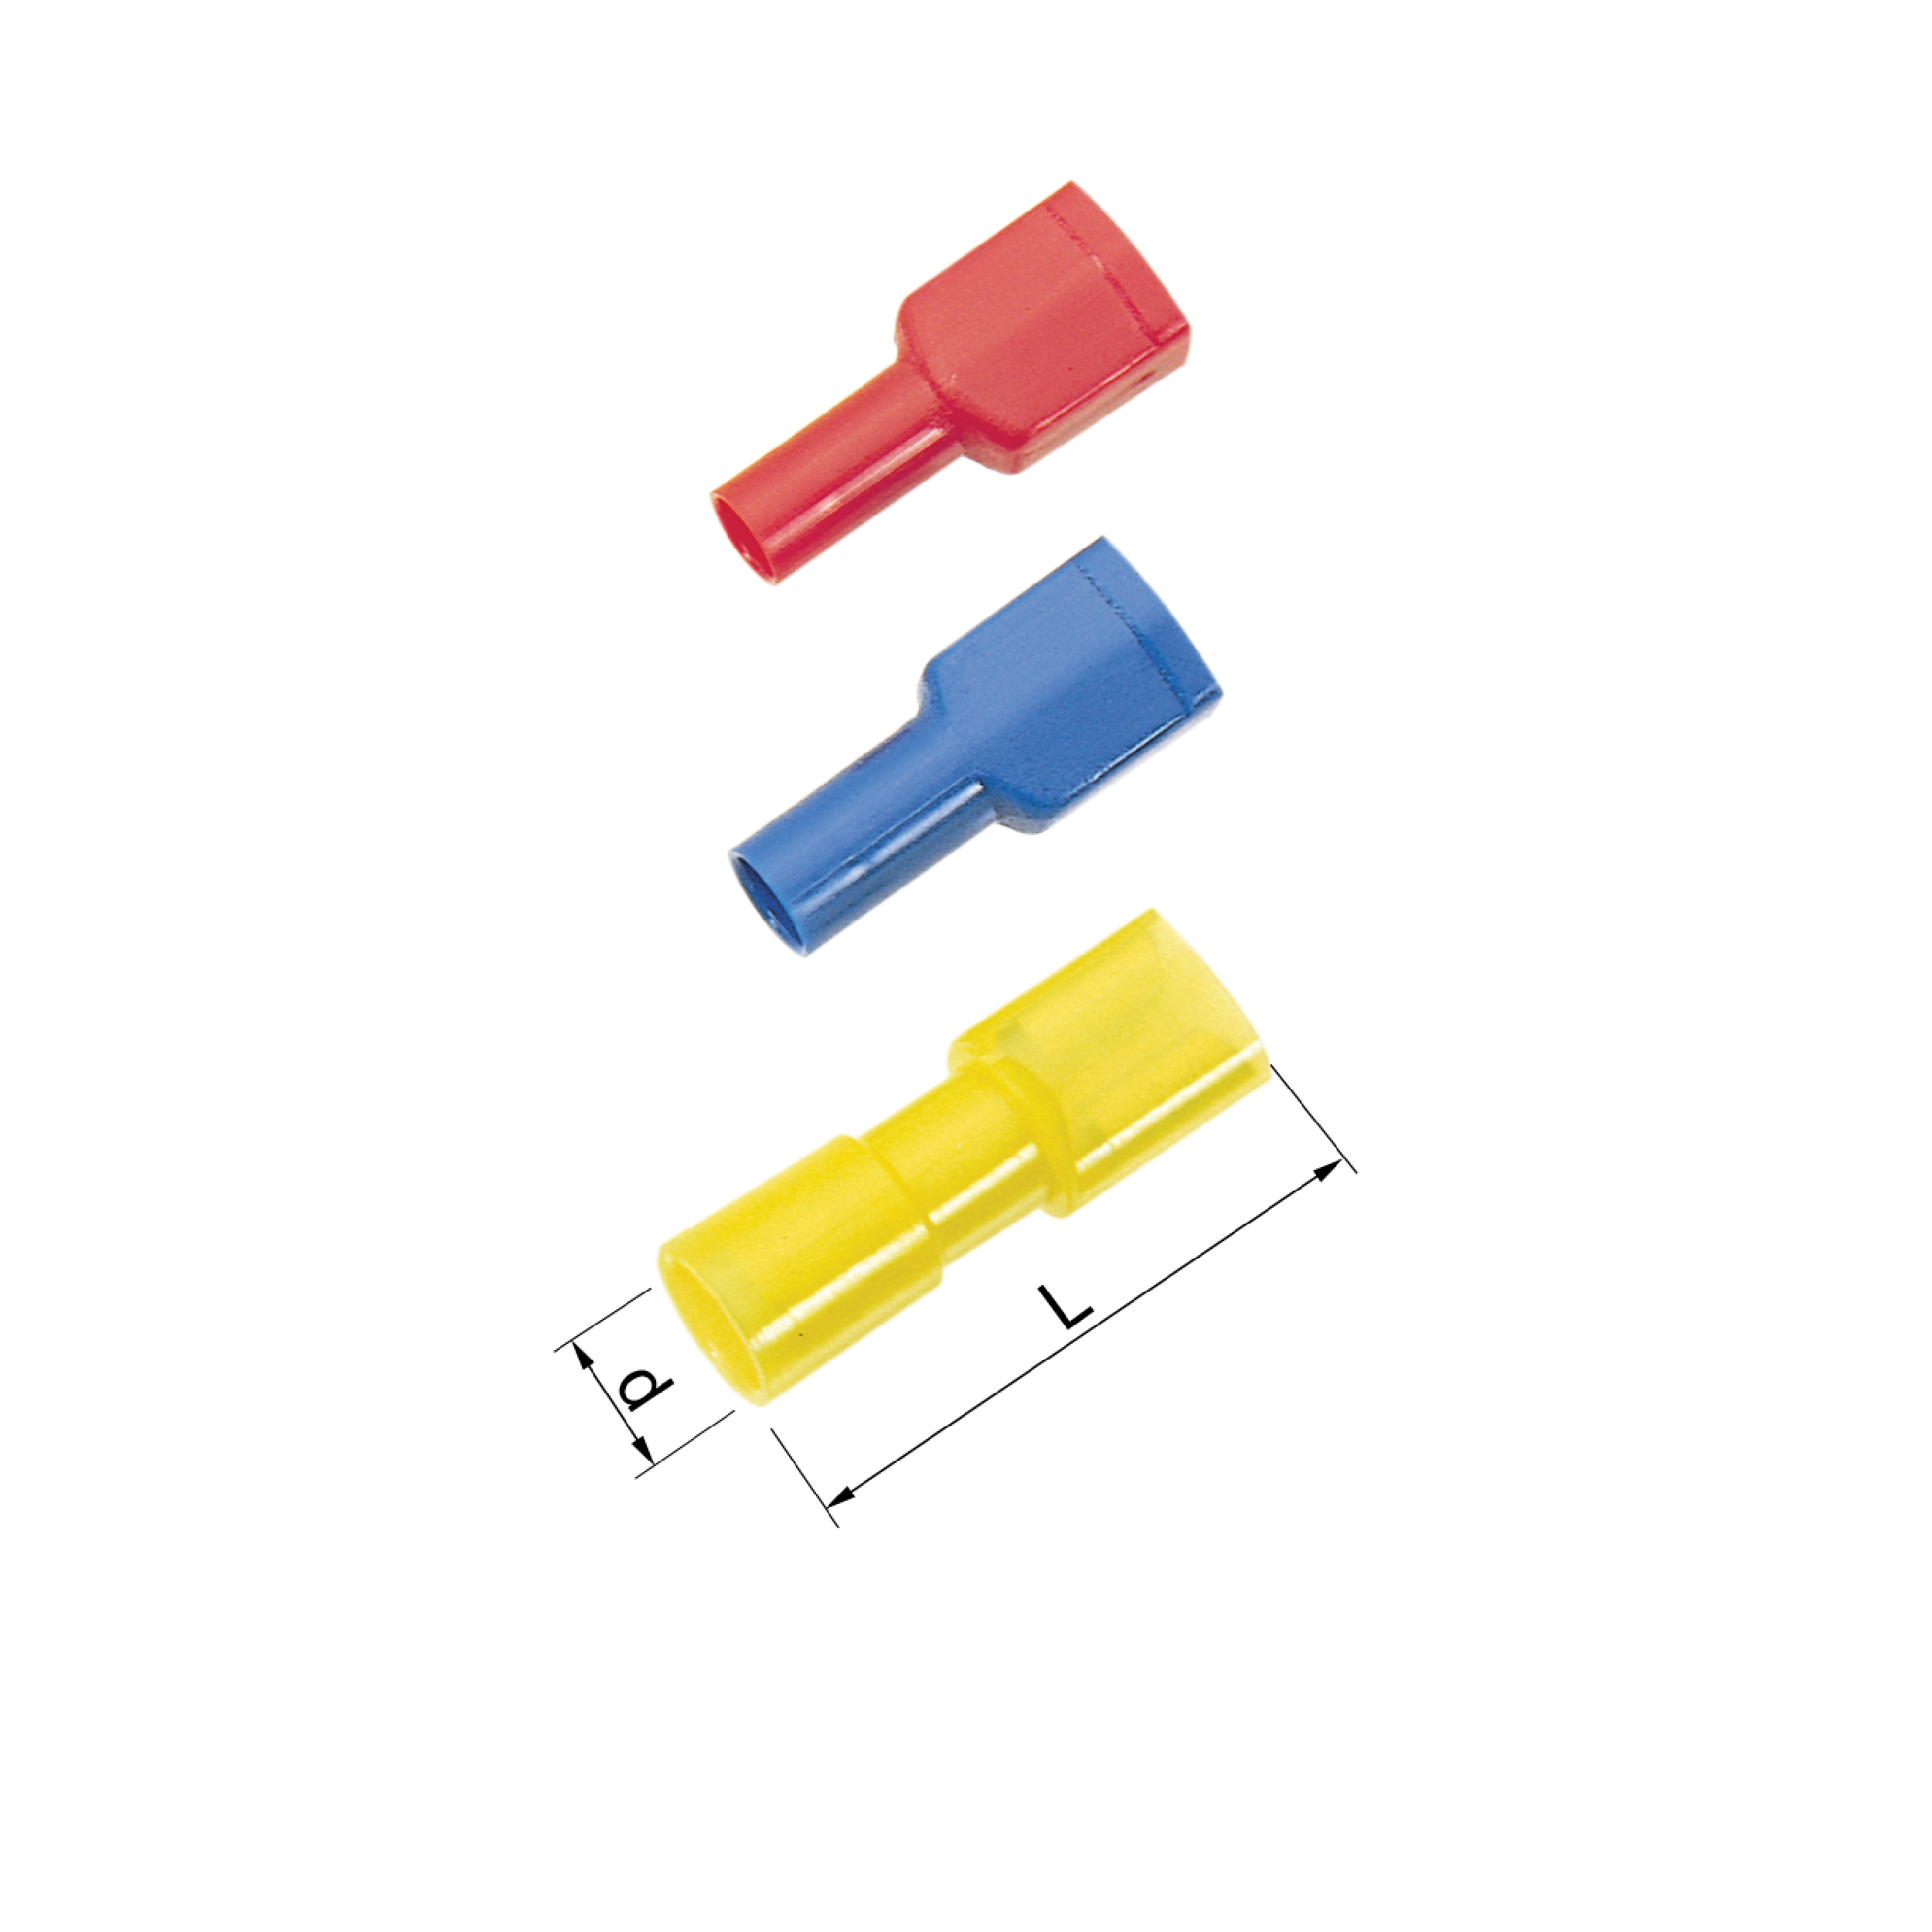 Elpress Pre-Insulated Receptacles (Fully Insulated) - Halogen Free (0.5-6mm²)